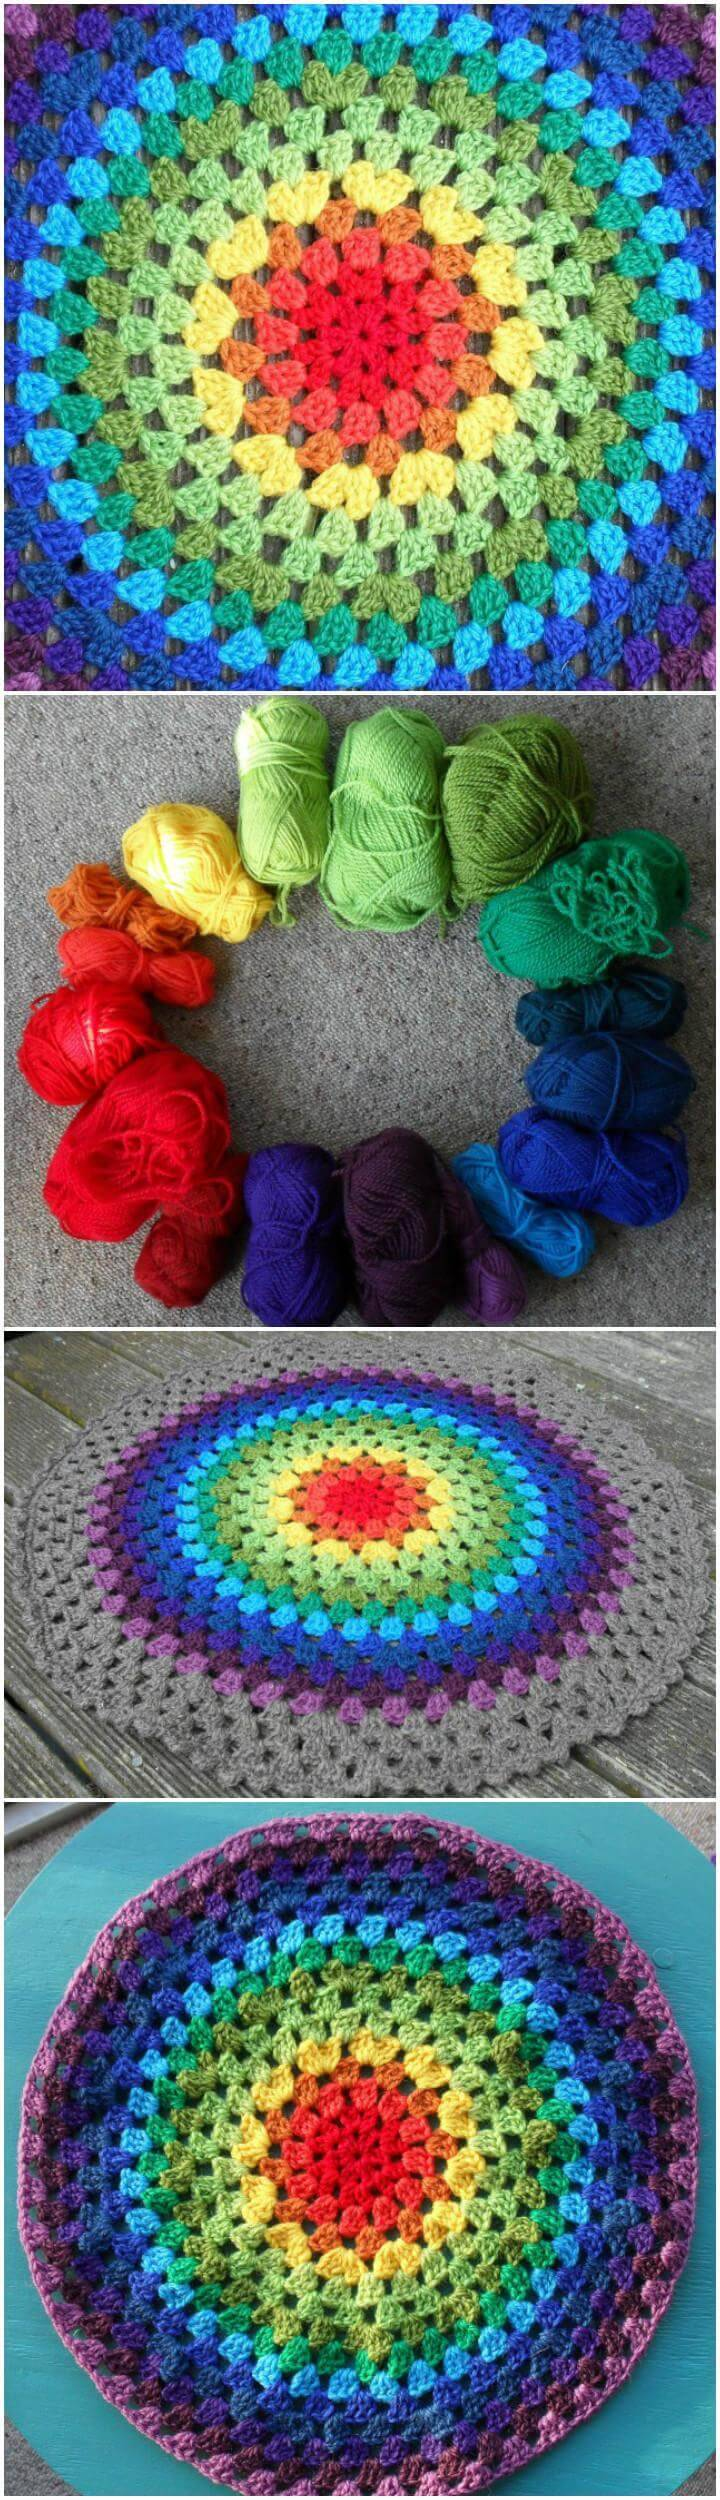 super beautiful crochet granny mandala